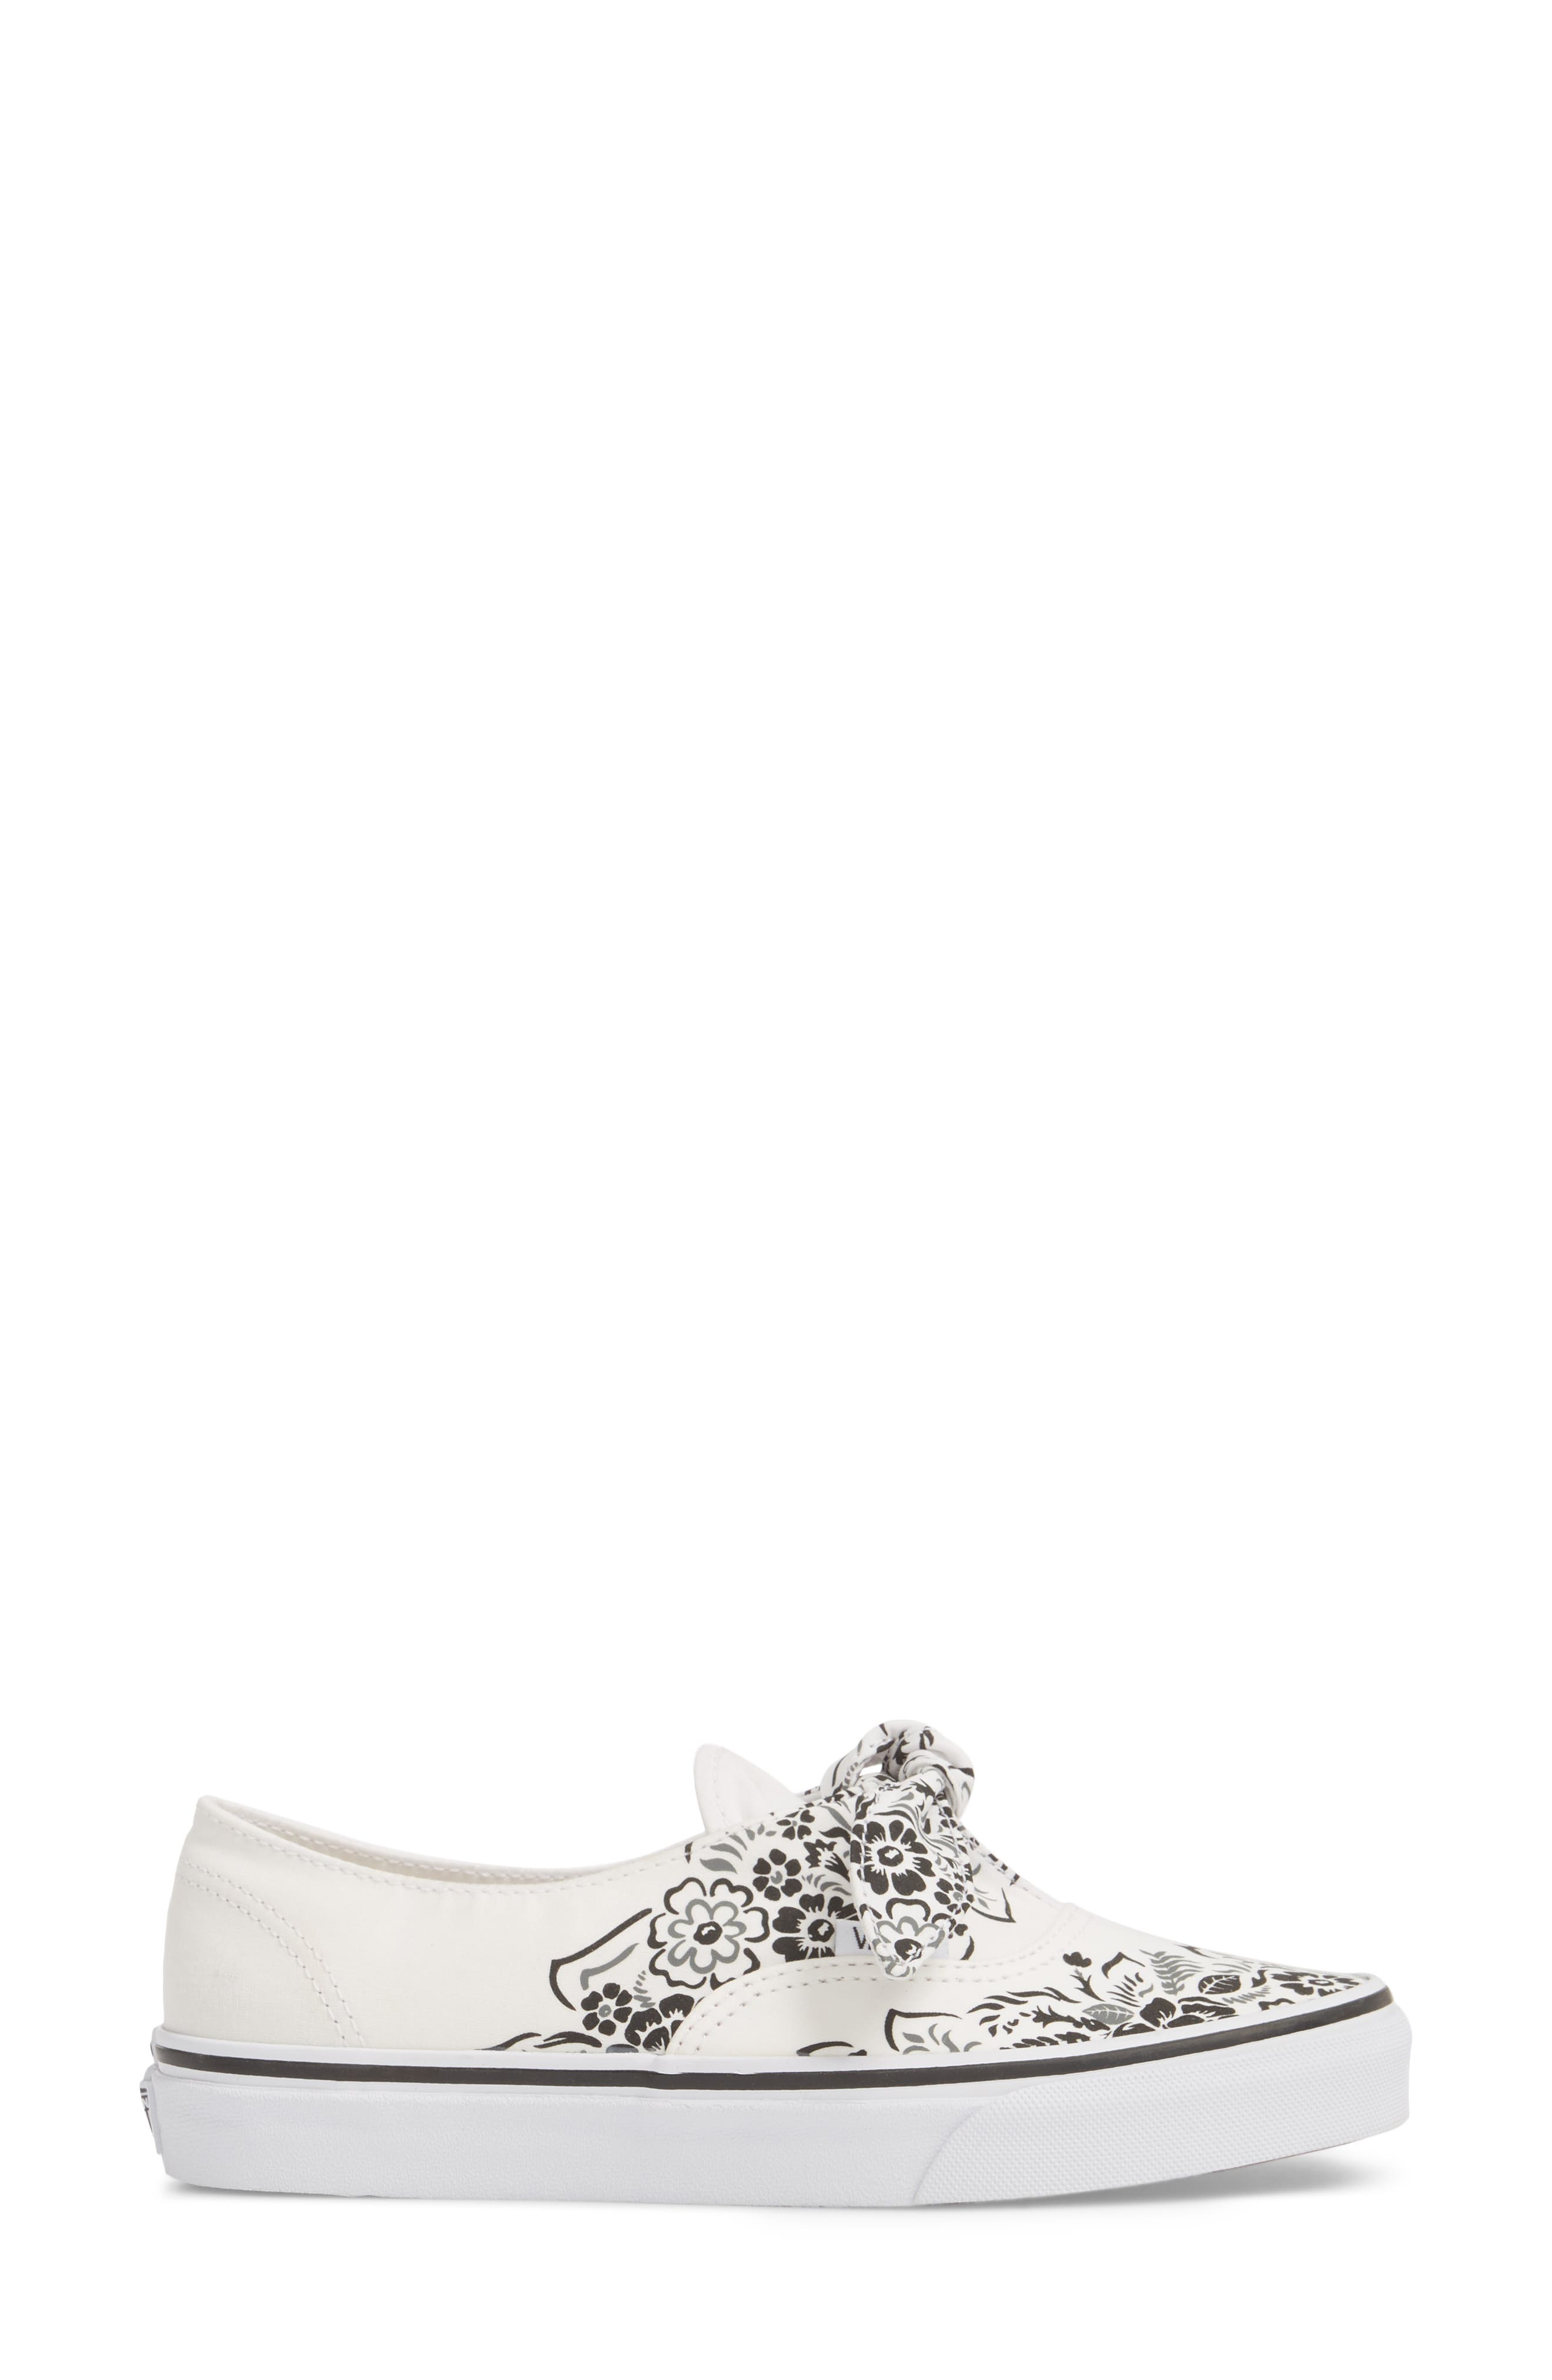 UA Authentic Knotted Floral Bandana Slip-On Sneaker,                             Alternate thumbnail 3, color,                             Marshmallow